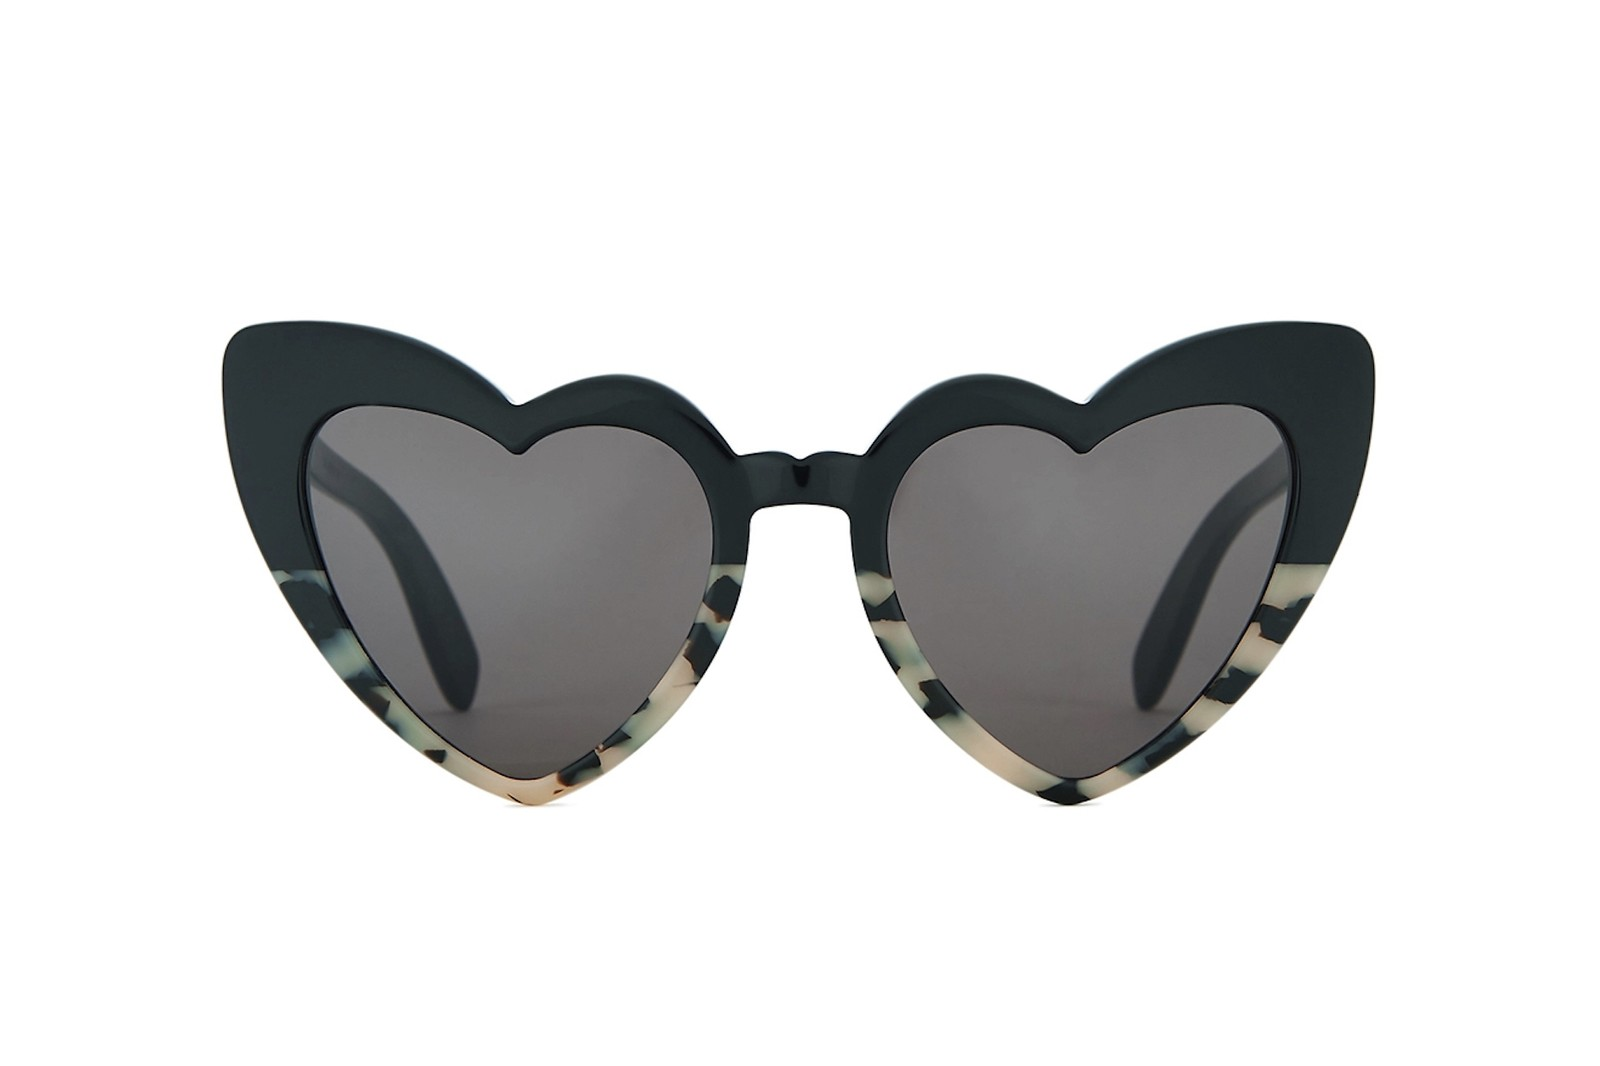 Best Statement Sunglasses Summer Eyewear Gucci Jacquemus CHIMI Loewe Saint Laurent